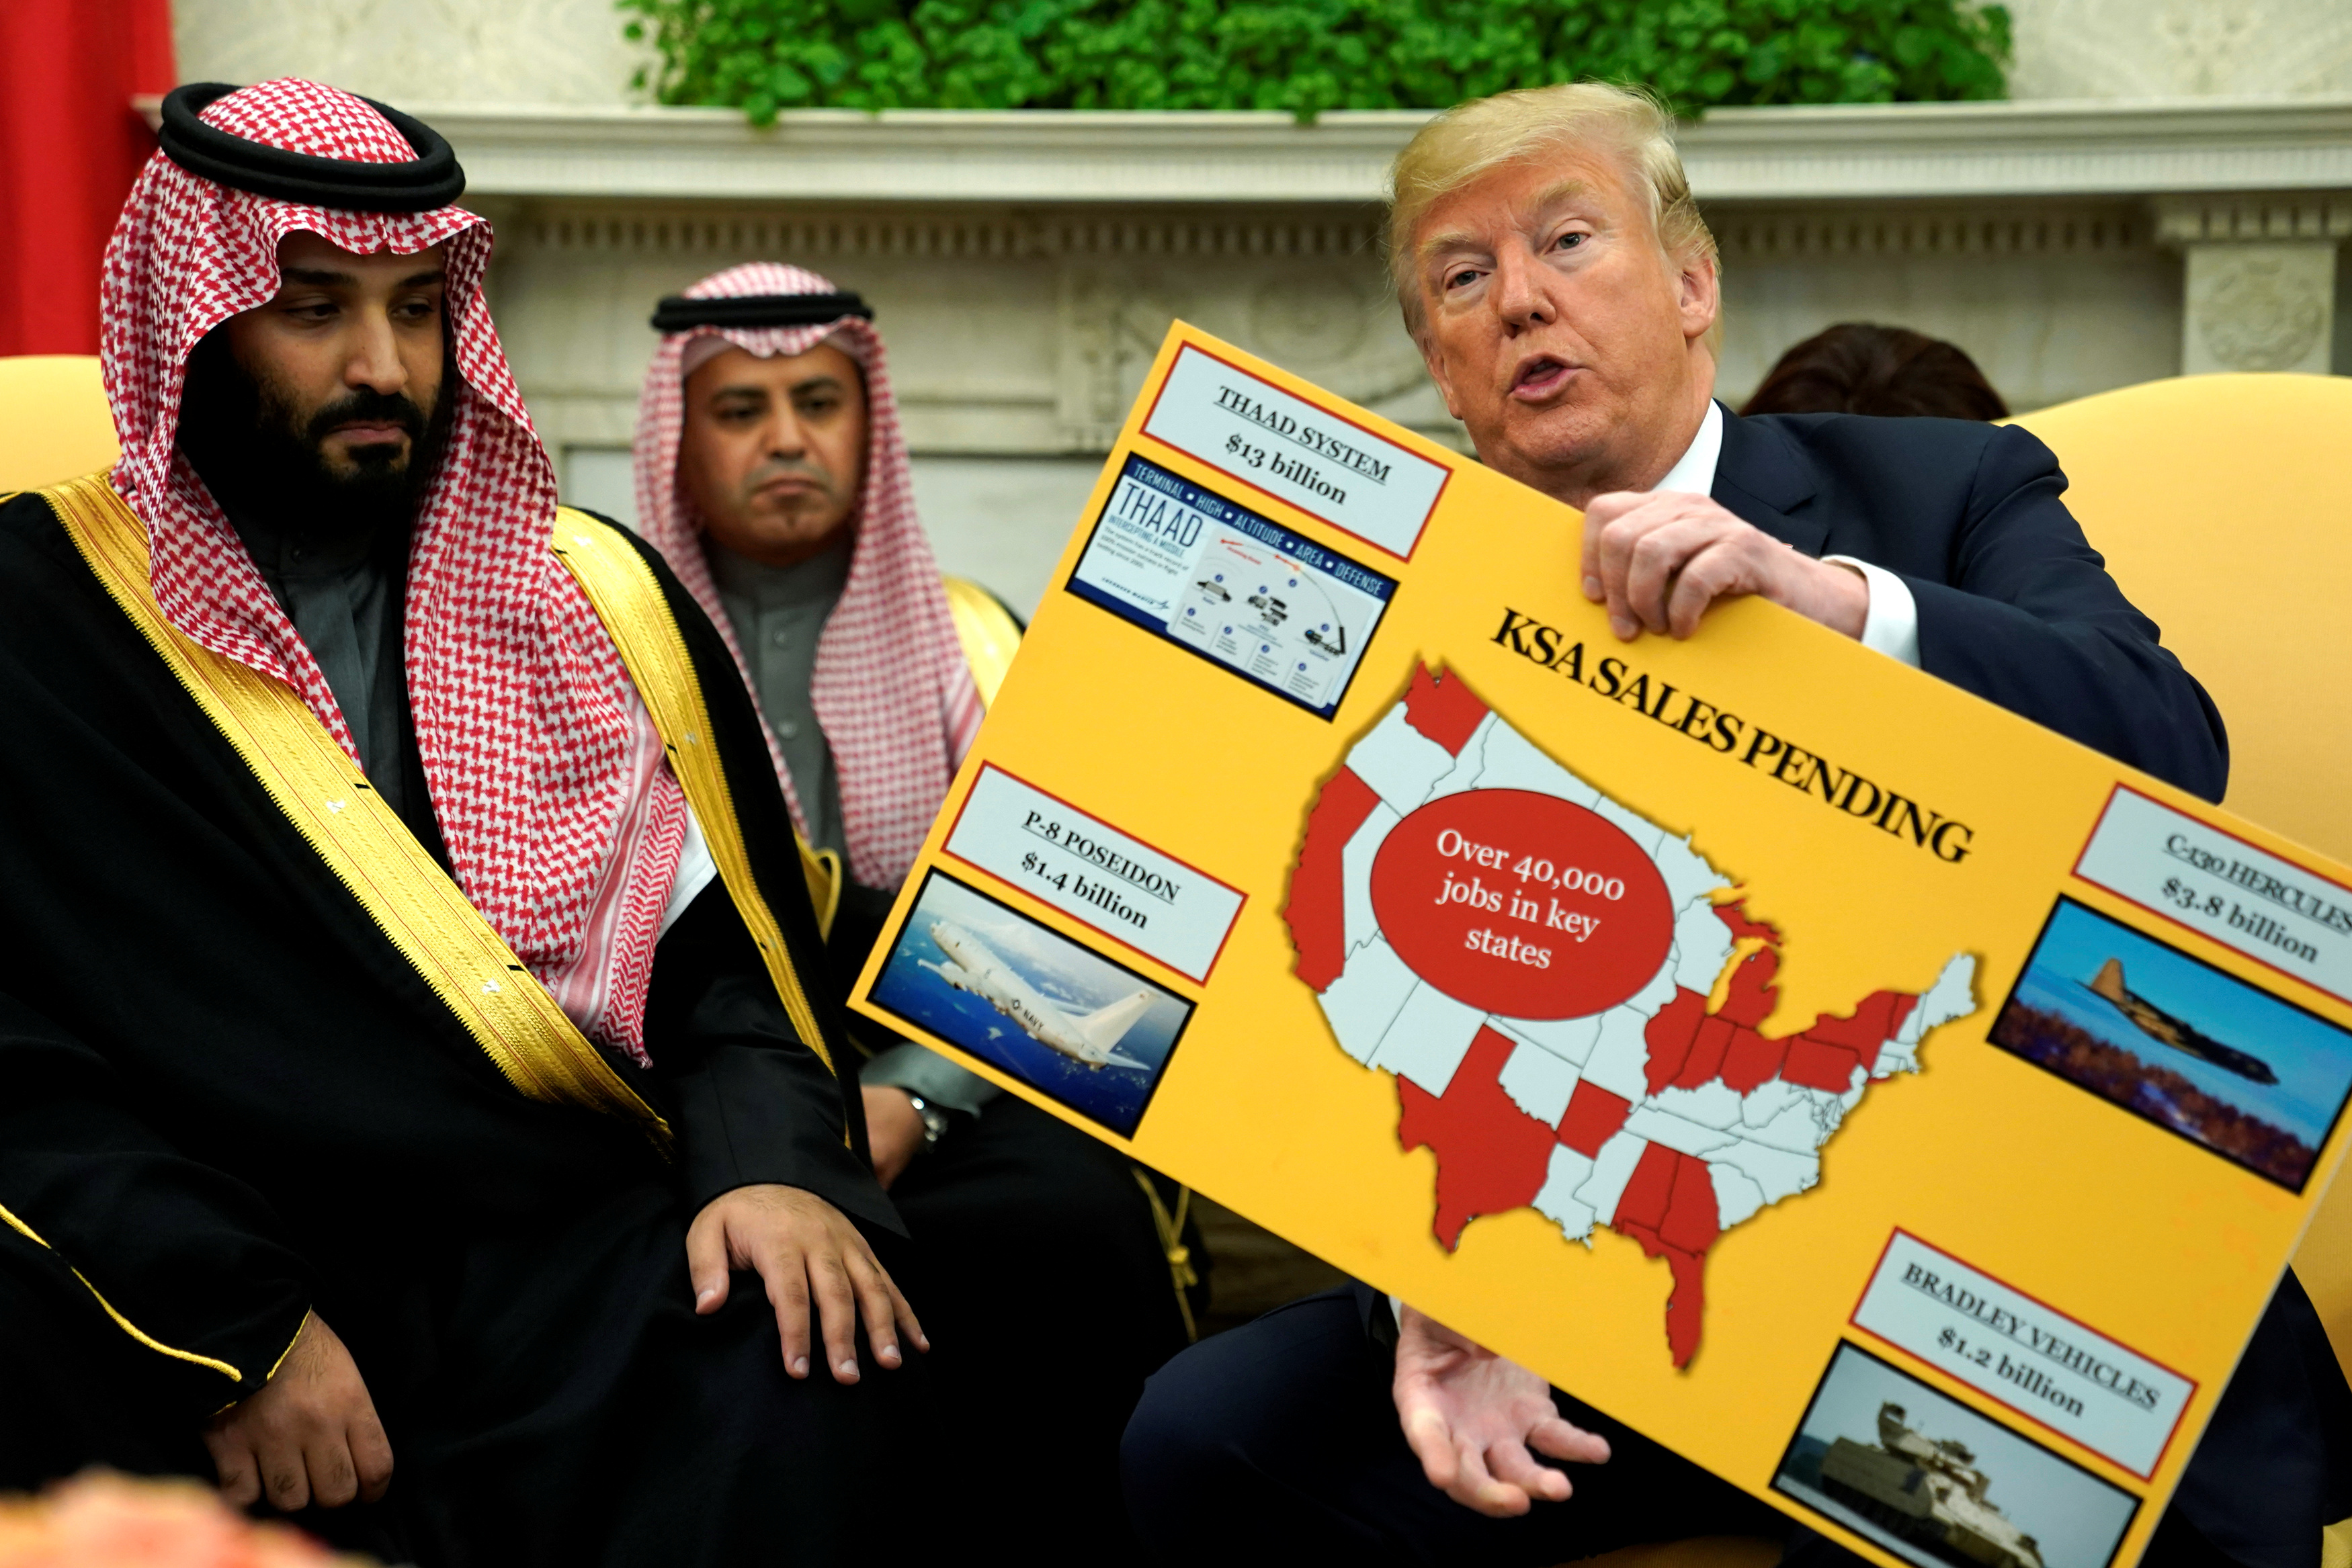 U.S. President Donald Trump holds a chart of military hardware sales as he welcomes Saudi Arabia's Crown Prince Mohammed bin Salman in the Oval Office at the White House in Washington, U.S. March 20, 2018.  REUTERS/Jonathan Ernst - RC14FF352EF0